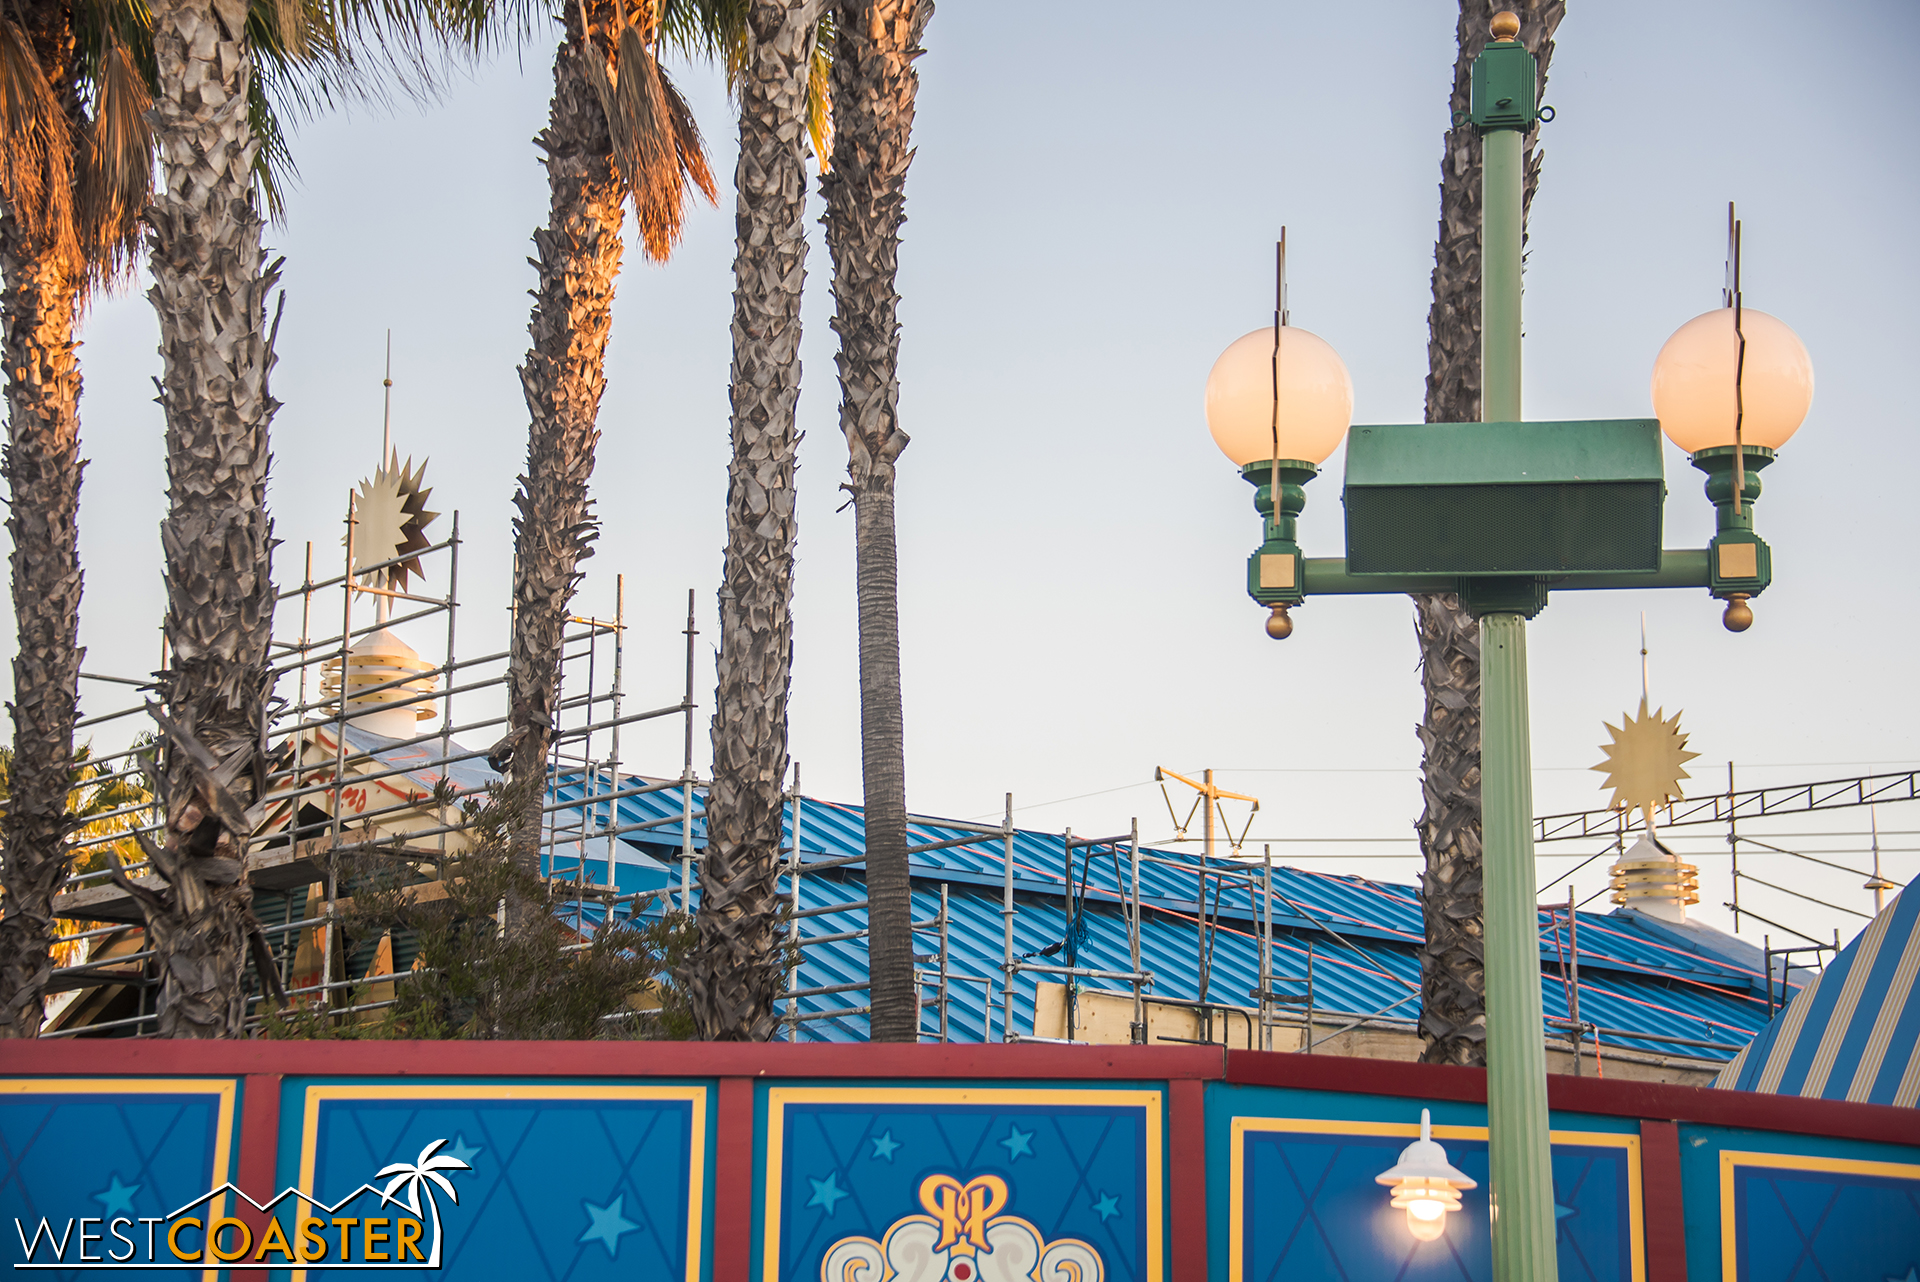 The station of California Screamin' will see a significant transformation into a mid-century looking building.